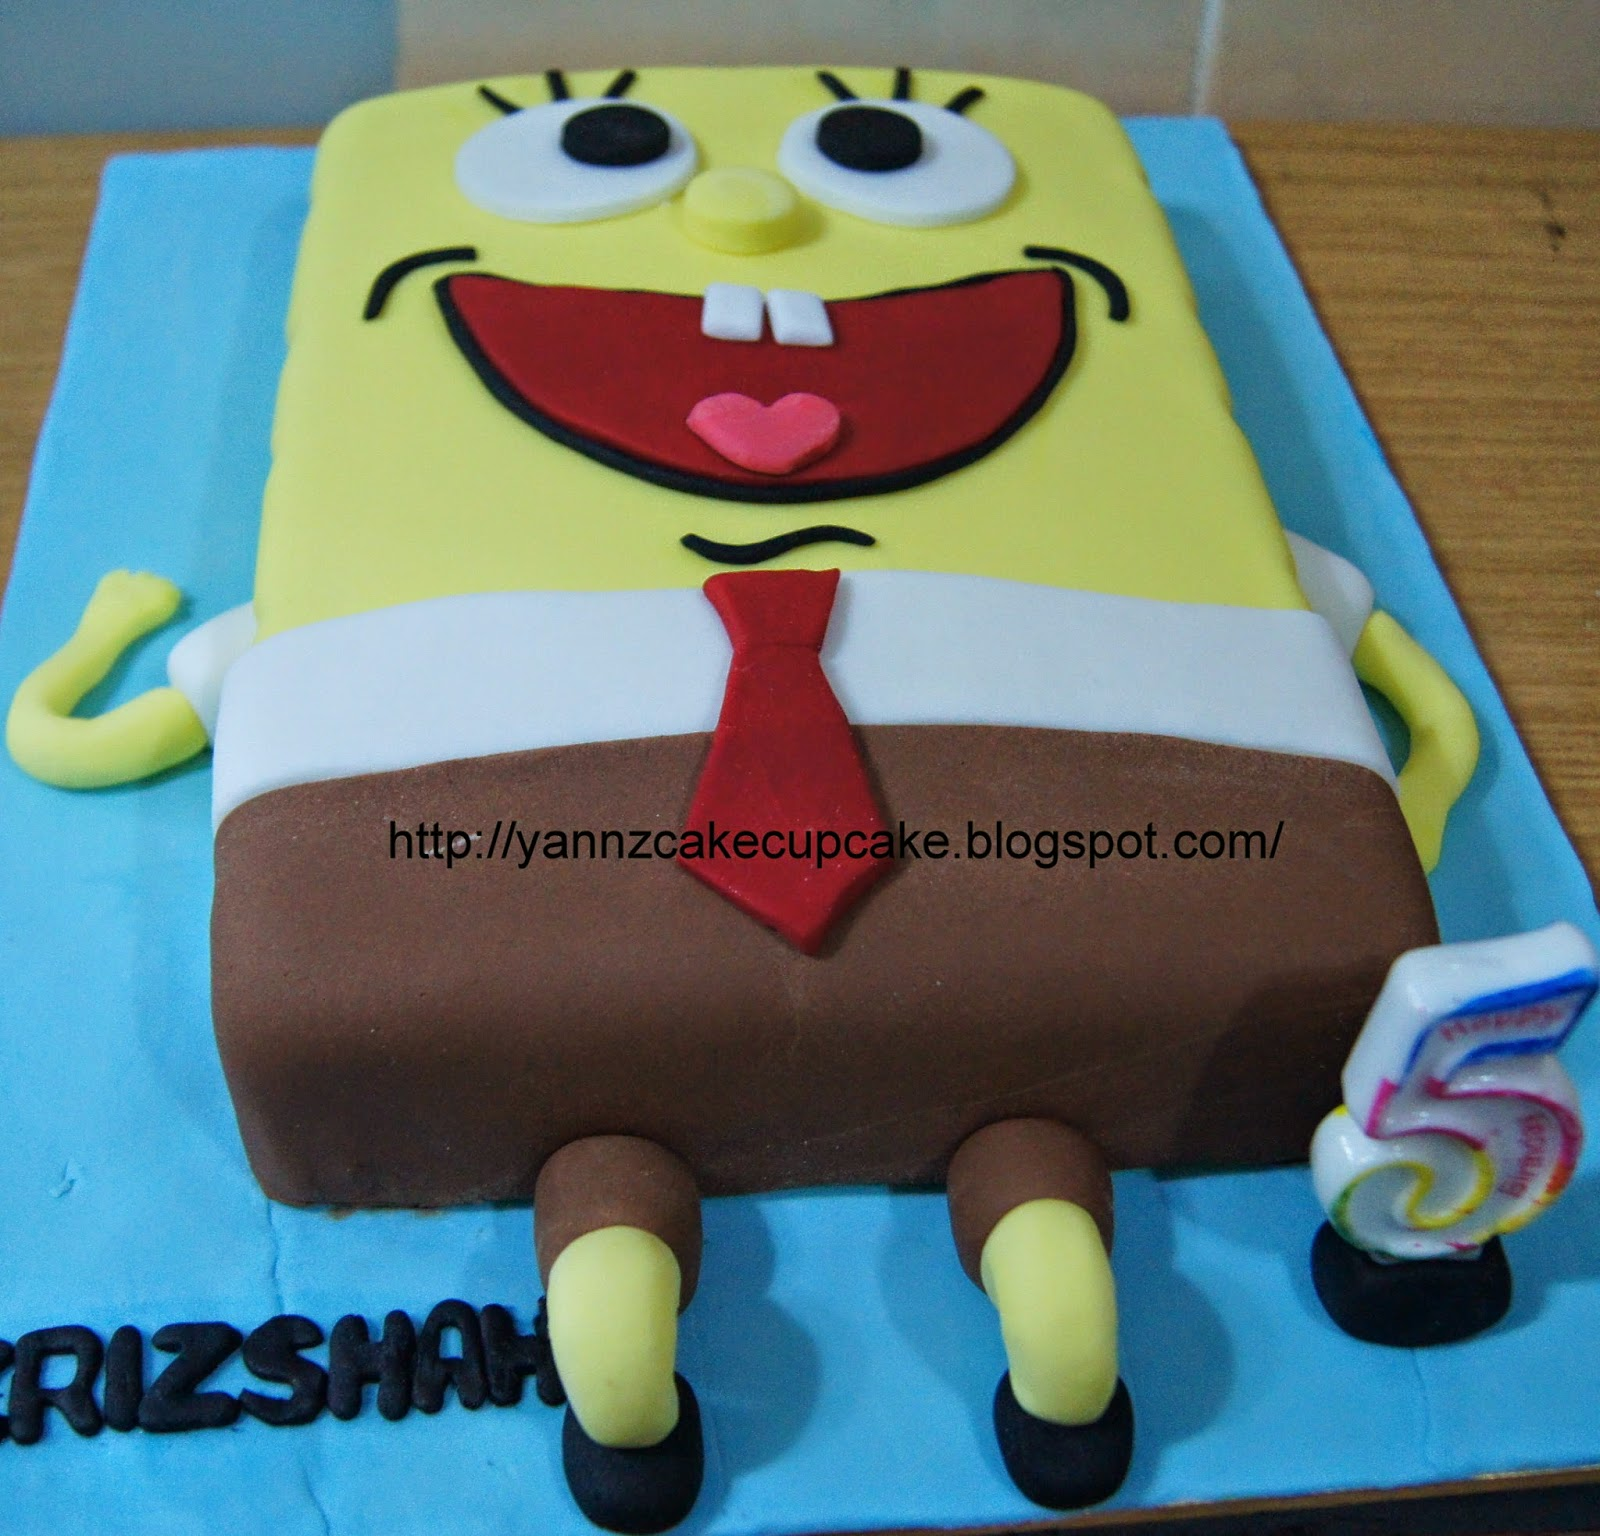 Ms Lisa Request Spongebob Cake For Her Sons Birthday Plus 25 Buttercream Cupcakes With Faces On It Thanks